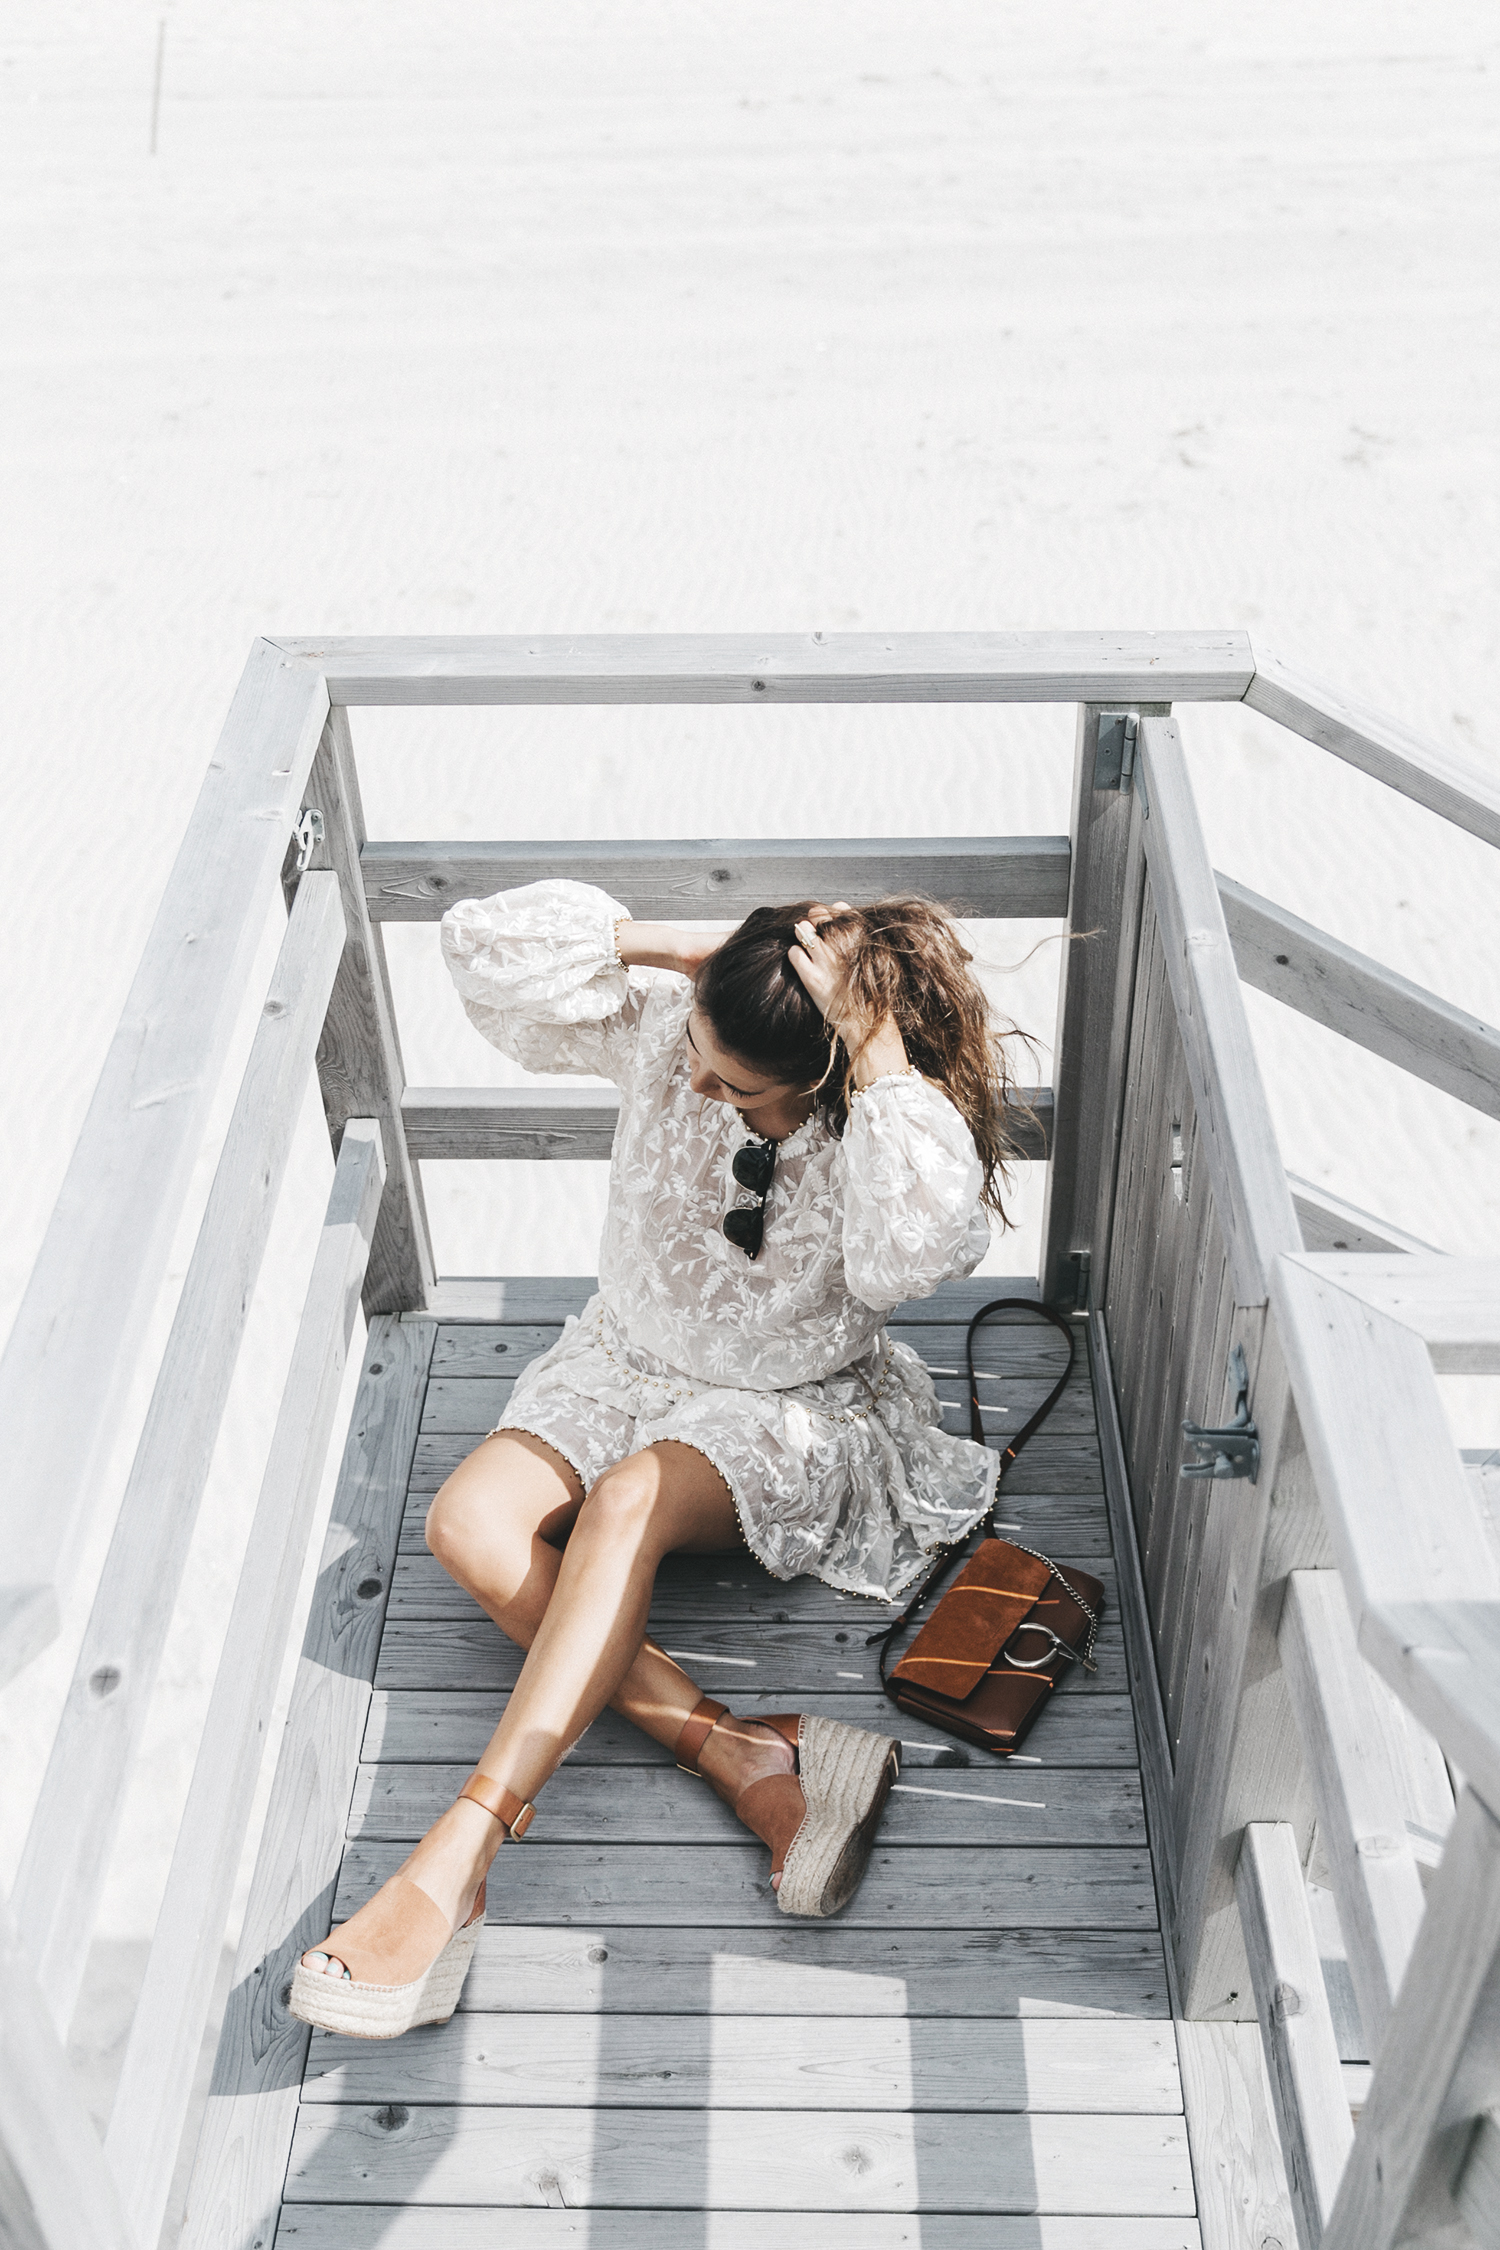 Revolve_in_The_Hamptons-Zimmermann-Embroidered_Dress-WHite_Dress-Chloe_Fay_Bag-Chloe_Wedges-Outfit-225